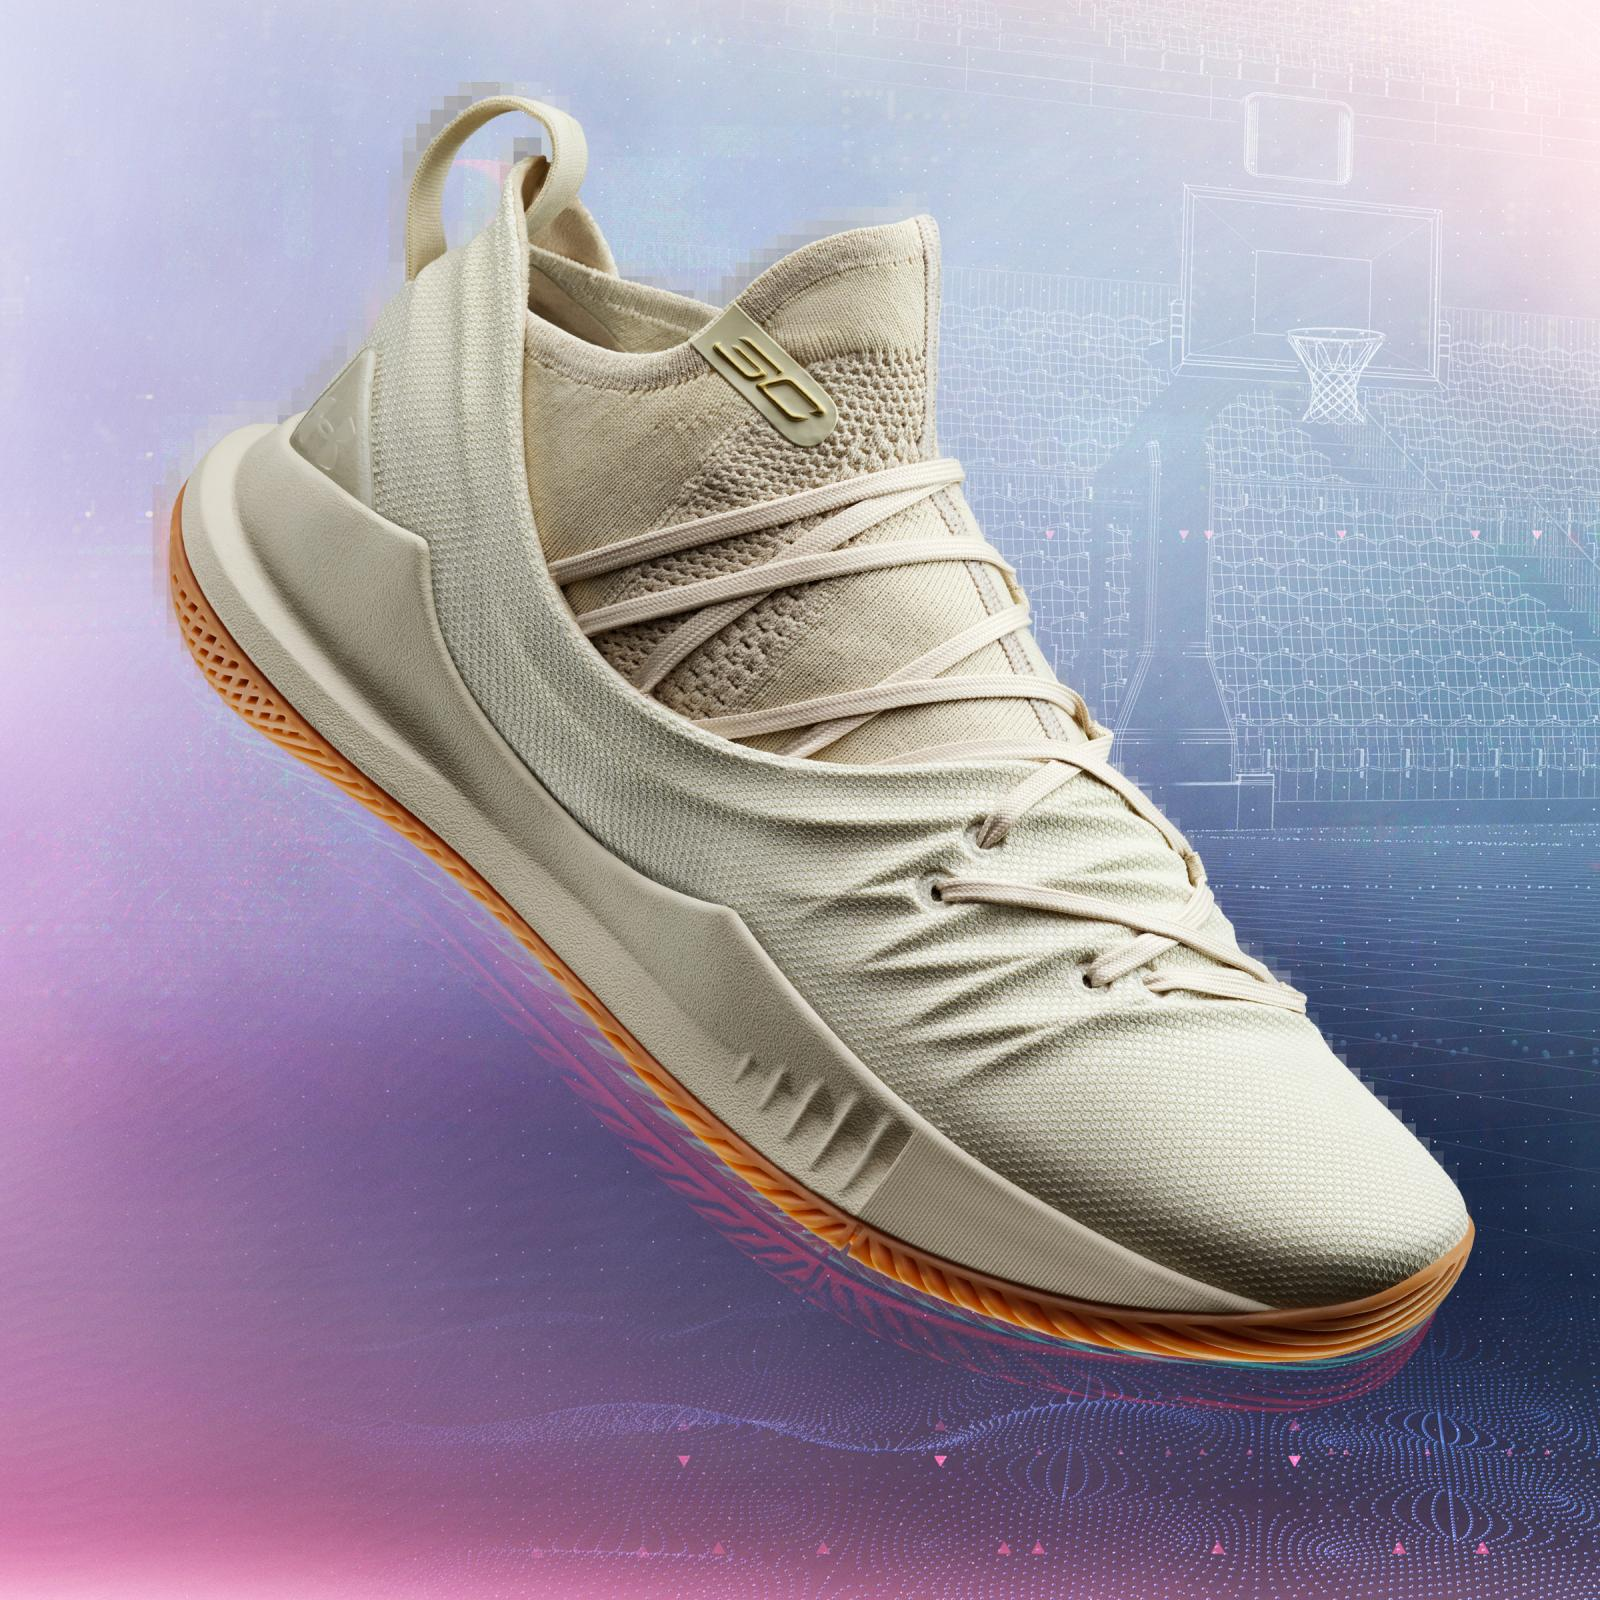 The Curry 5 tan colorway will be available in limited pairs around the globe on Sept. 7